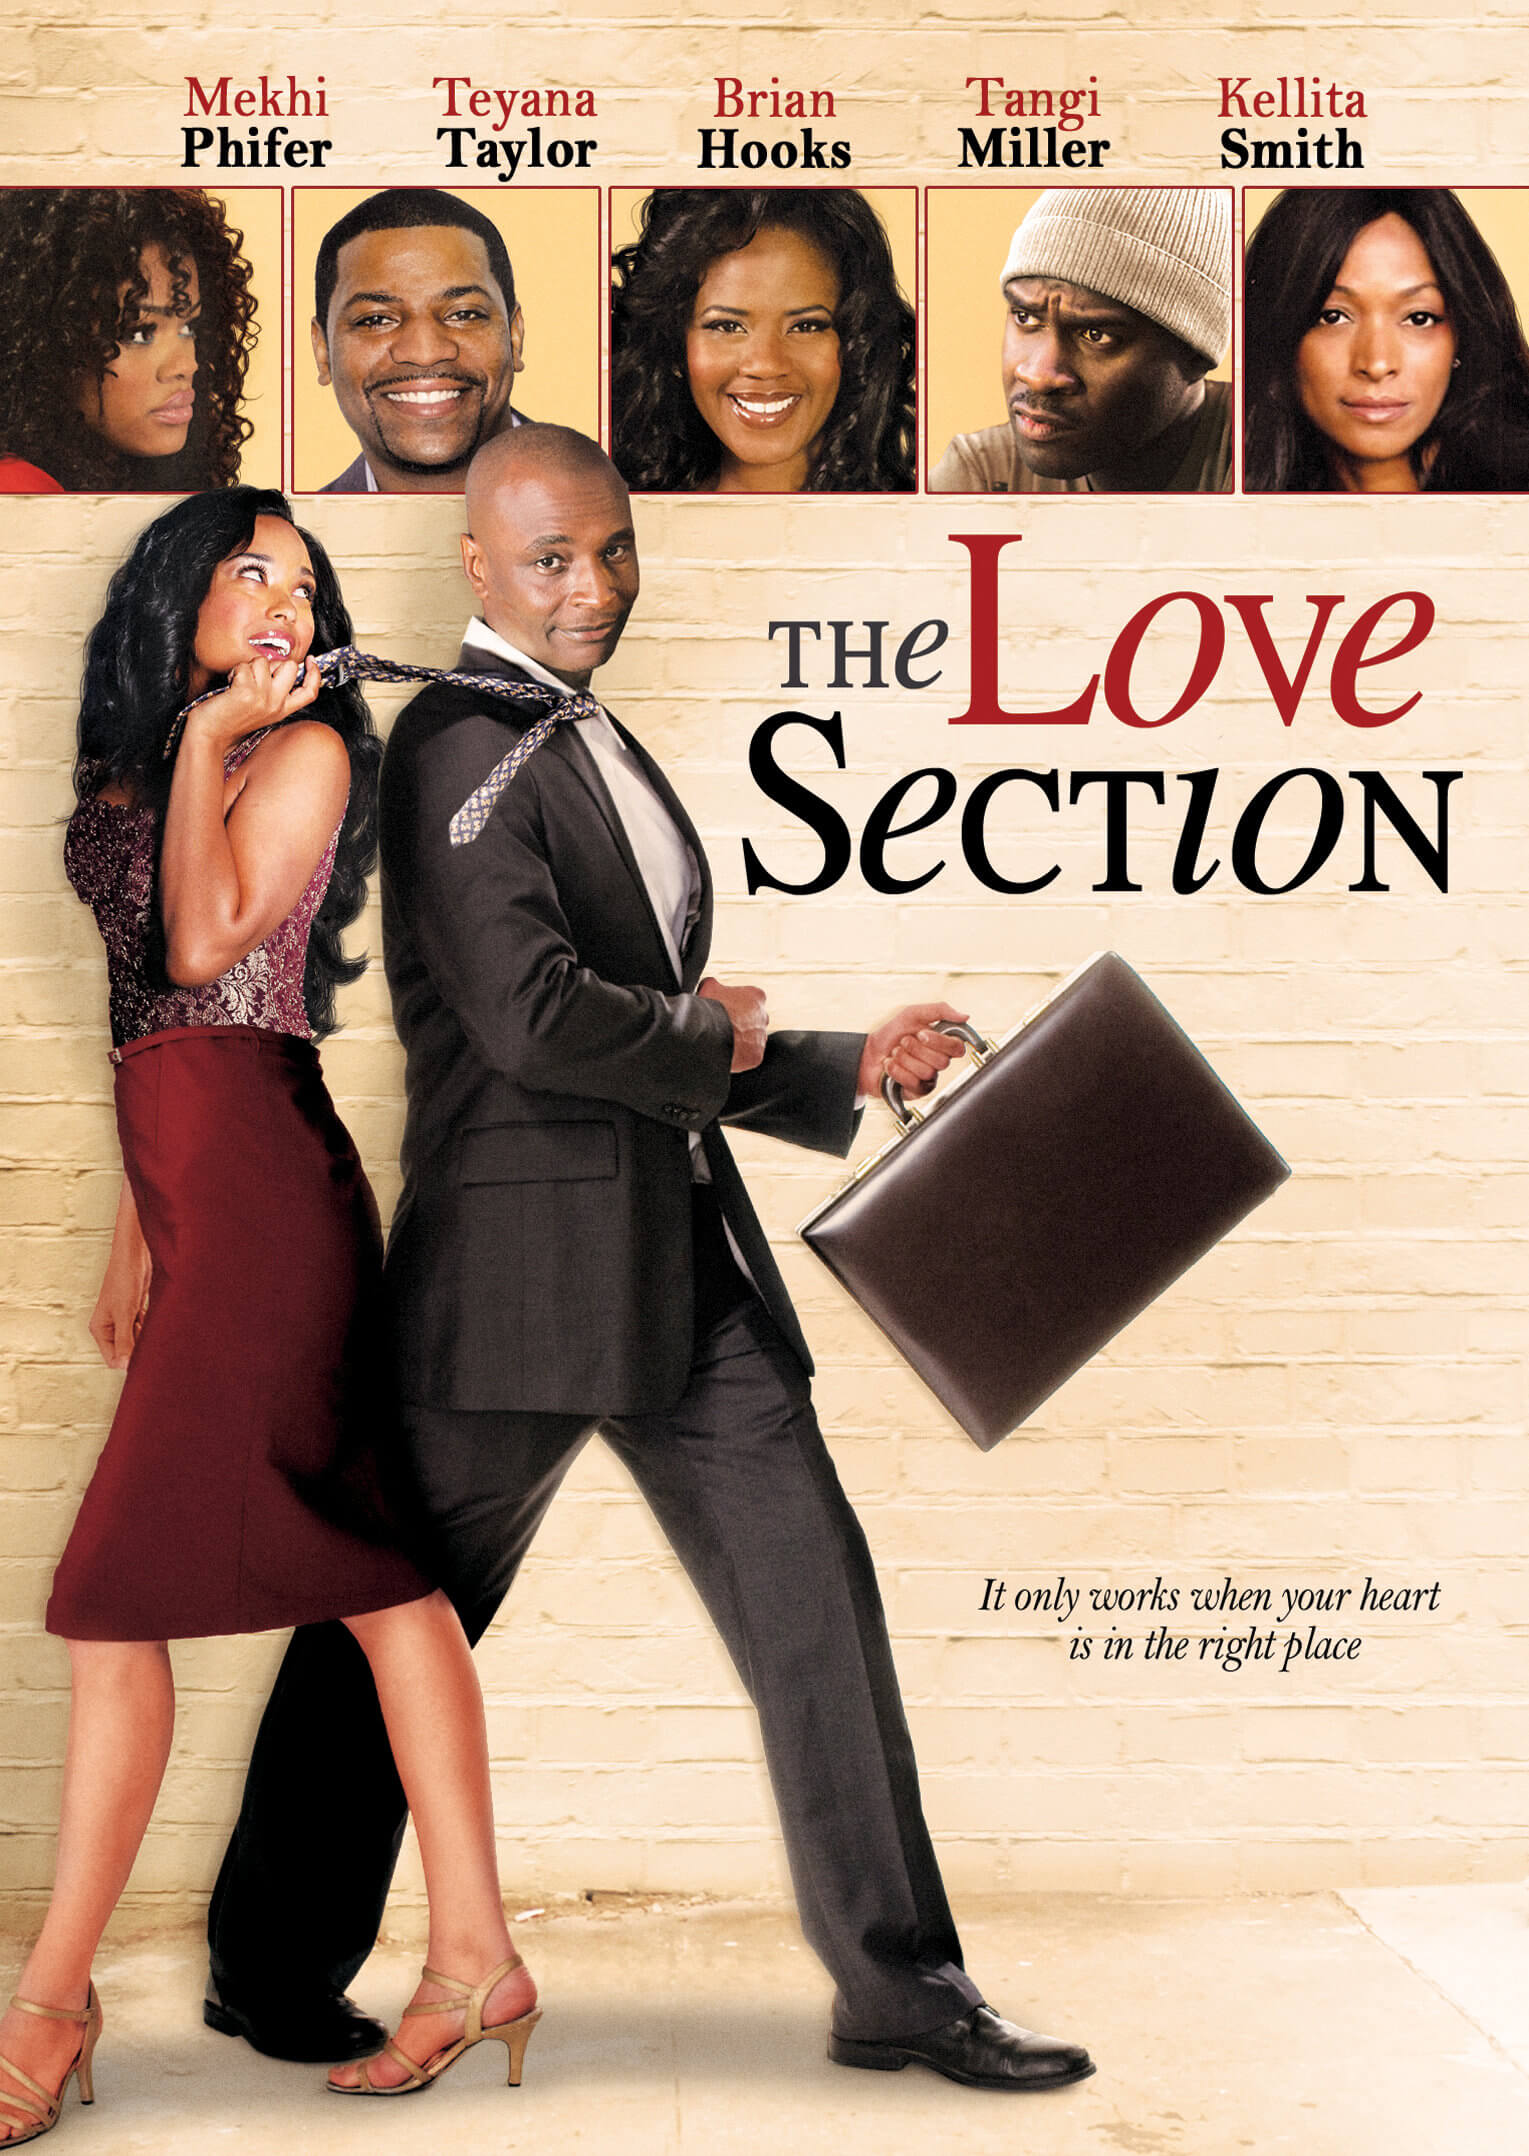 The Love Section FILMOGRAPHY